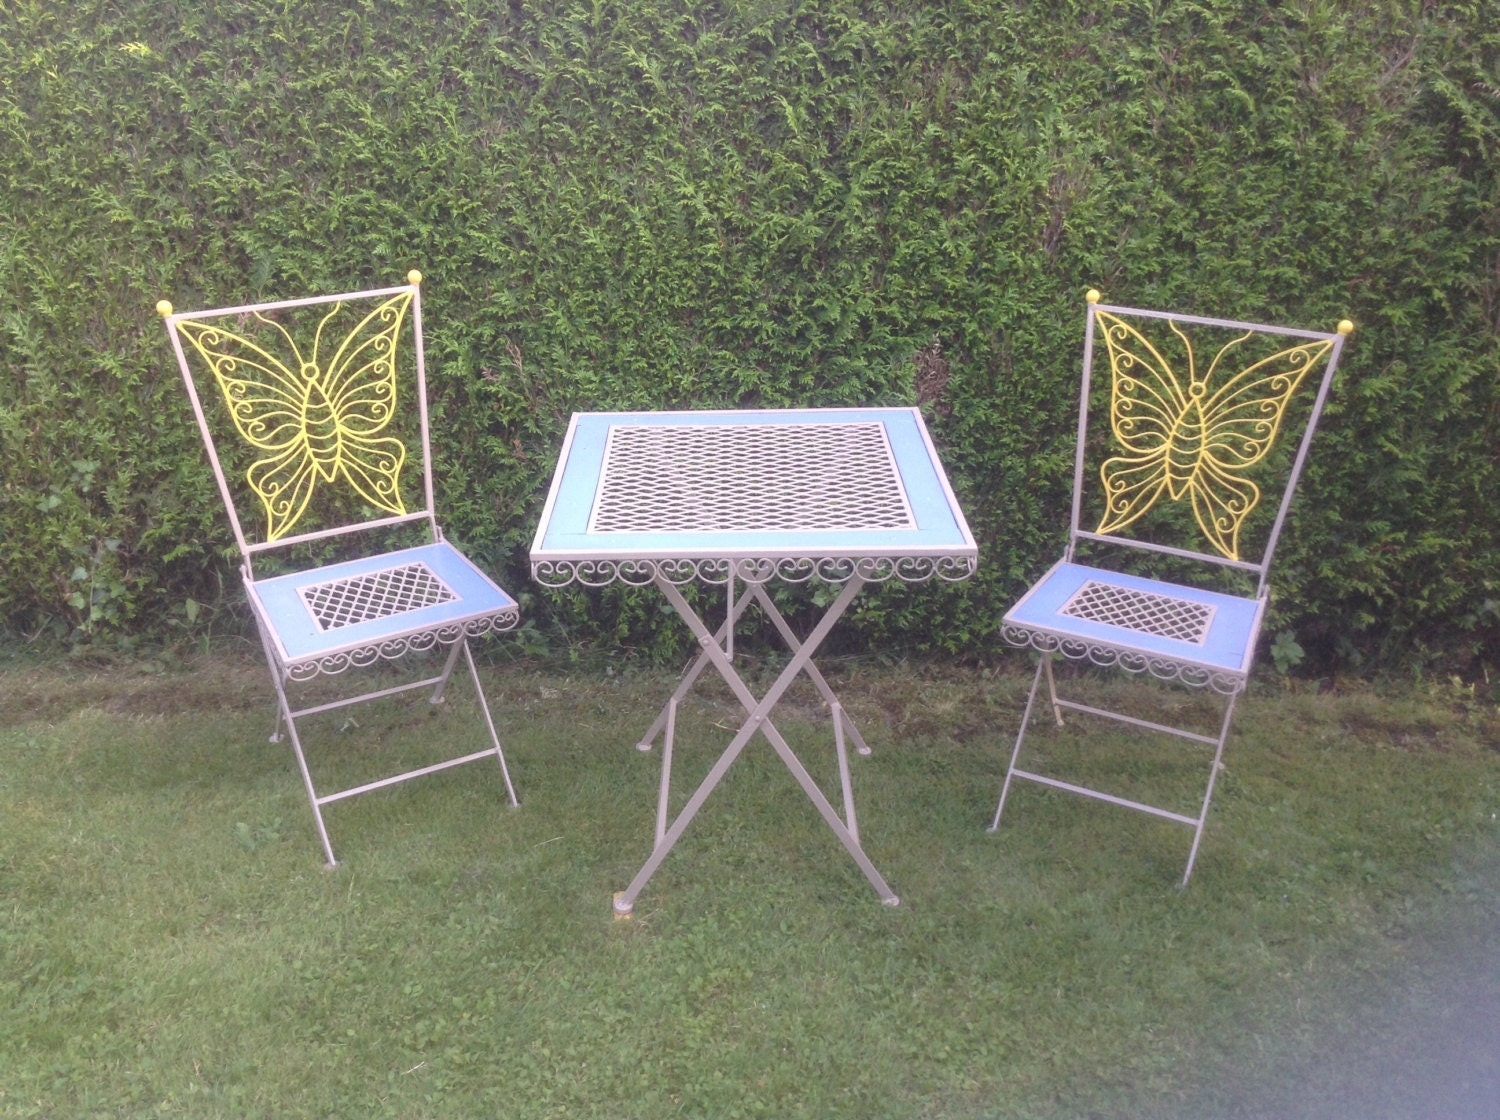 Oh La La Vintage French Garden Patio Furniture Salon De Jardin Circa 1940 S Forged Iron